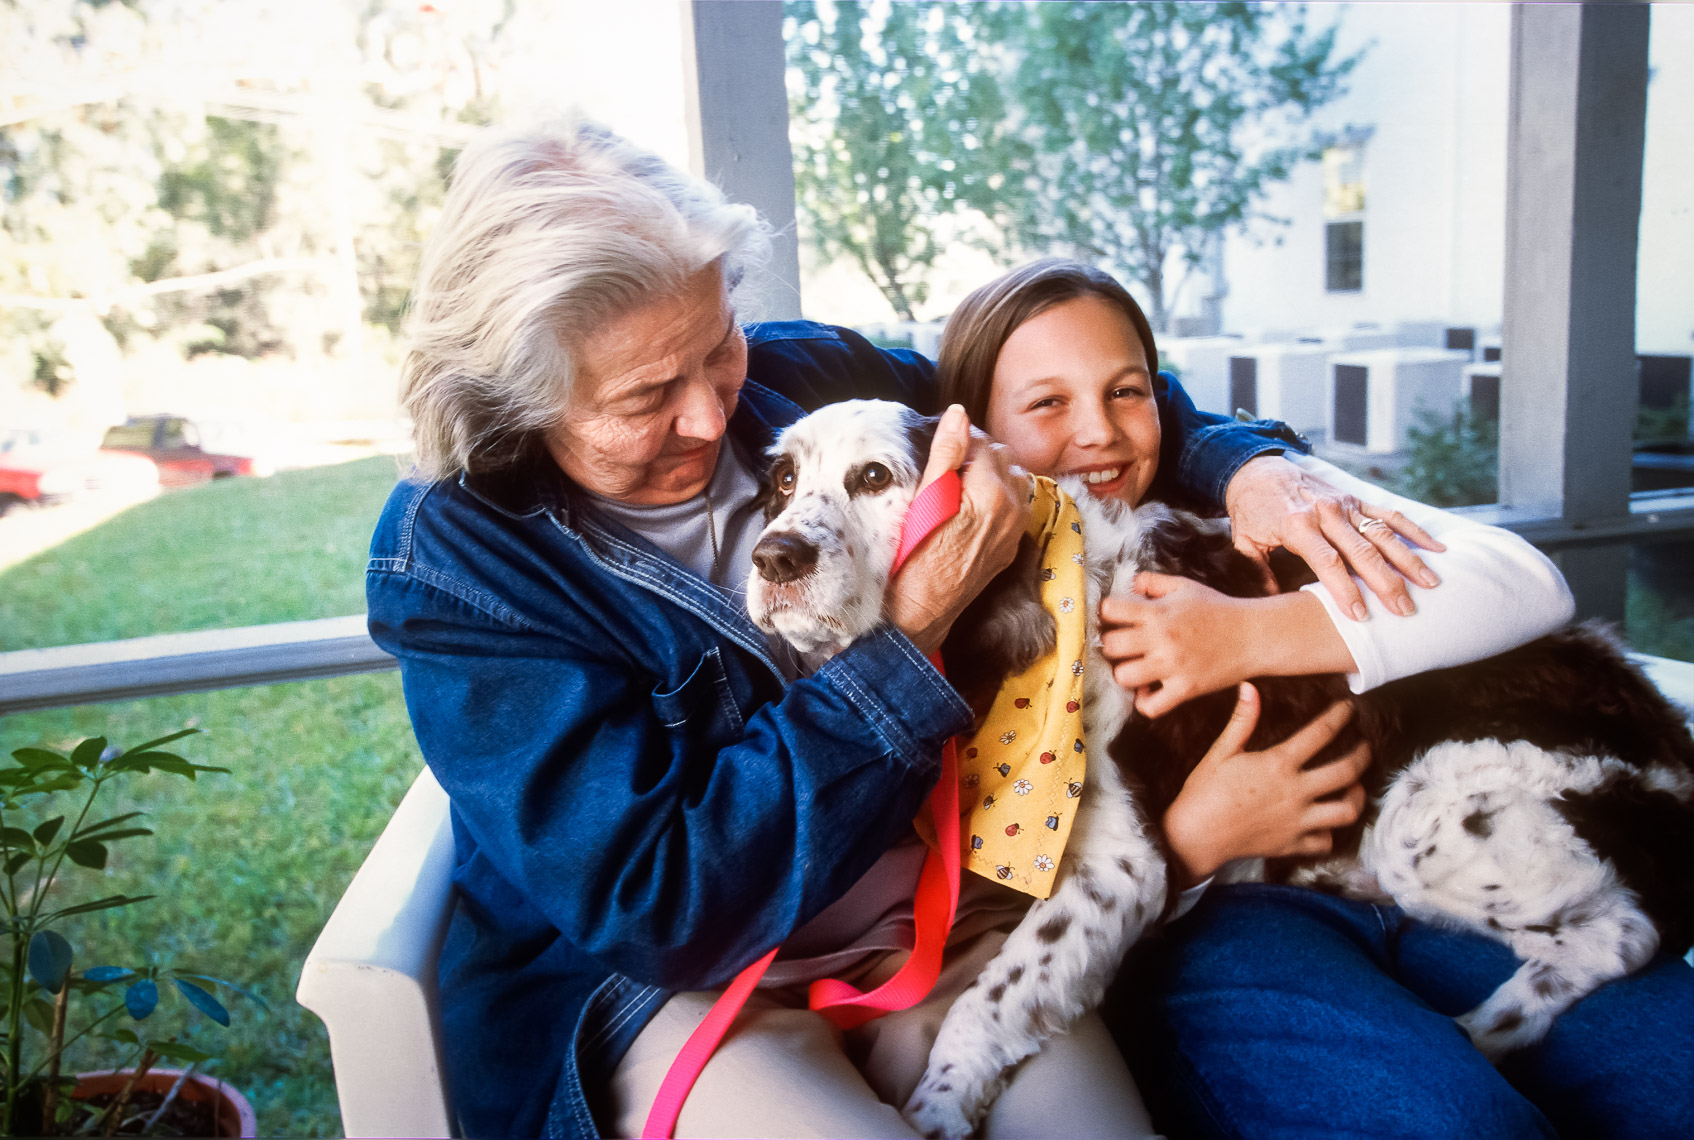 Lifestyle Photo with Grandmother and Dog